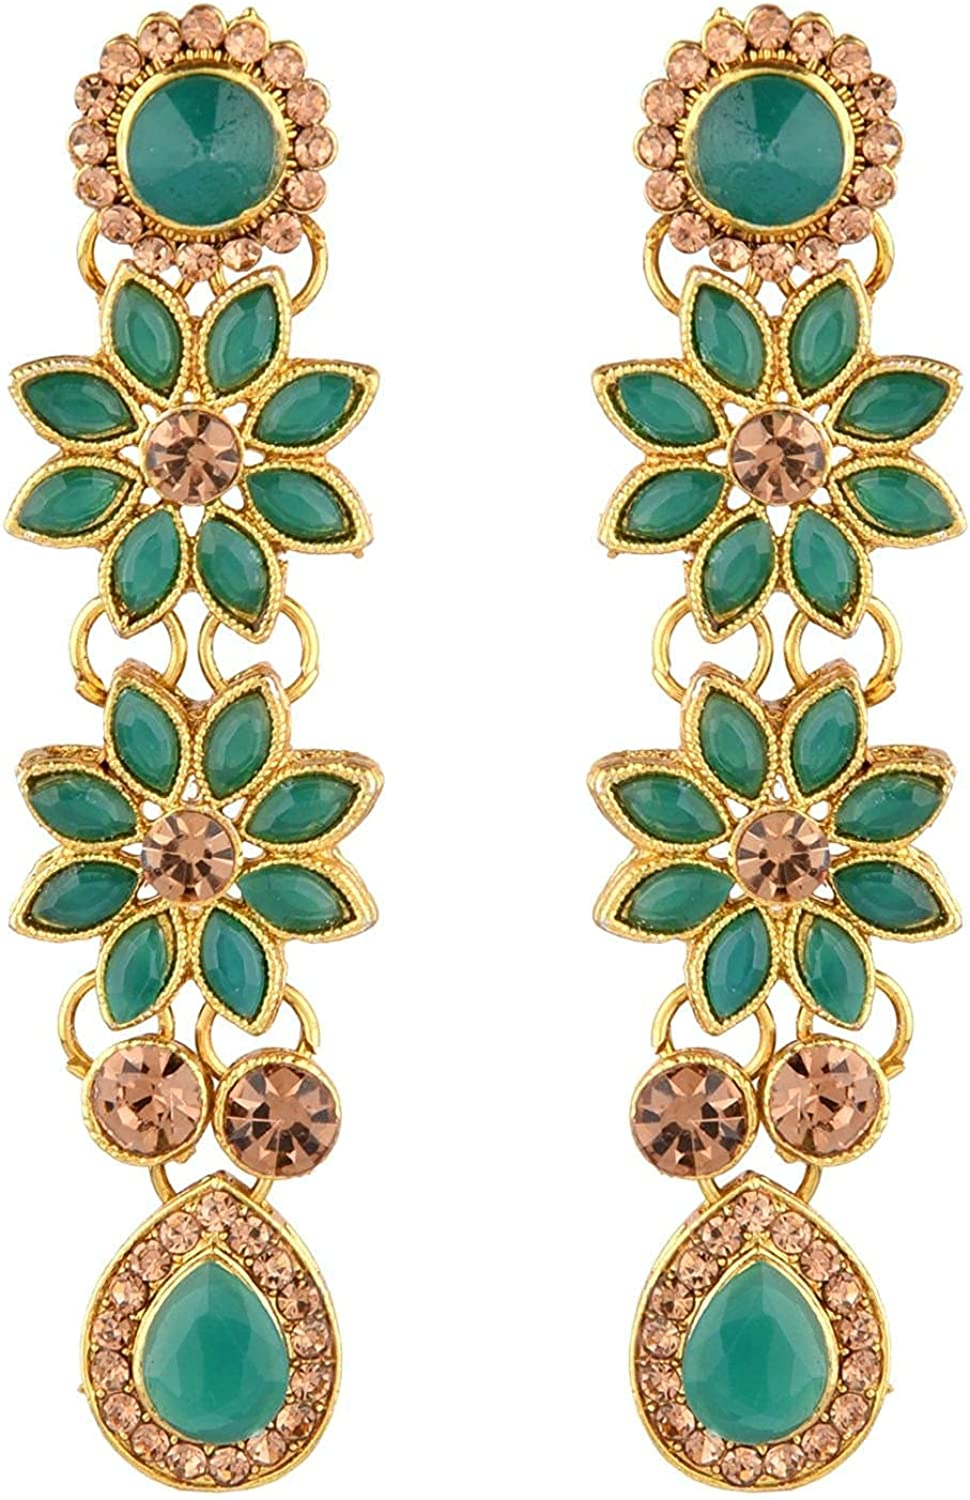 Efulgenz Indian Jewelry Floral Choker Necklace Maang Tikka Earrings Bollywood Wedding Crystal Necklace Earrings Head Chain Set